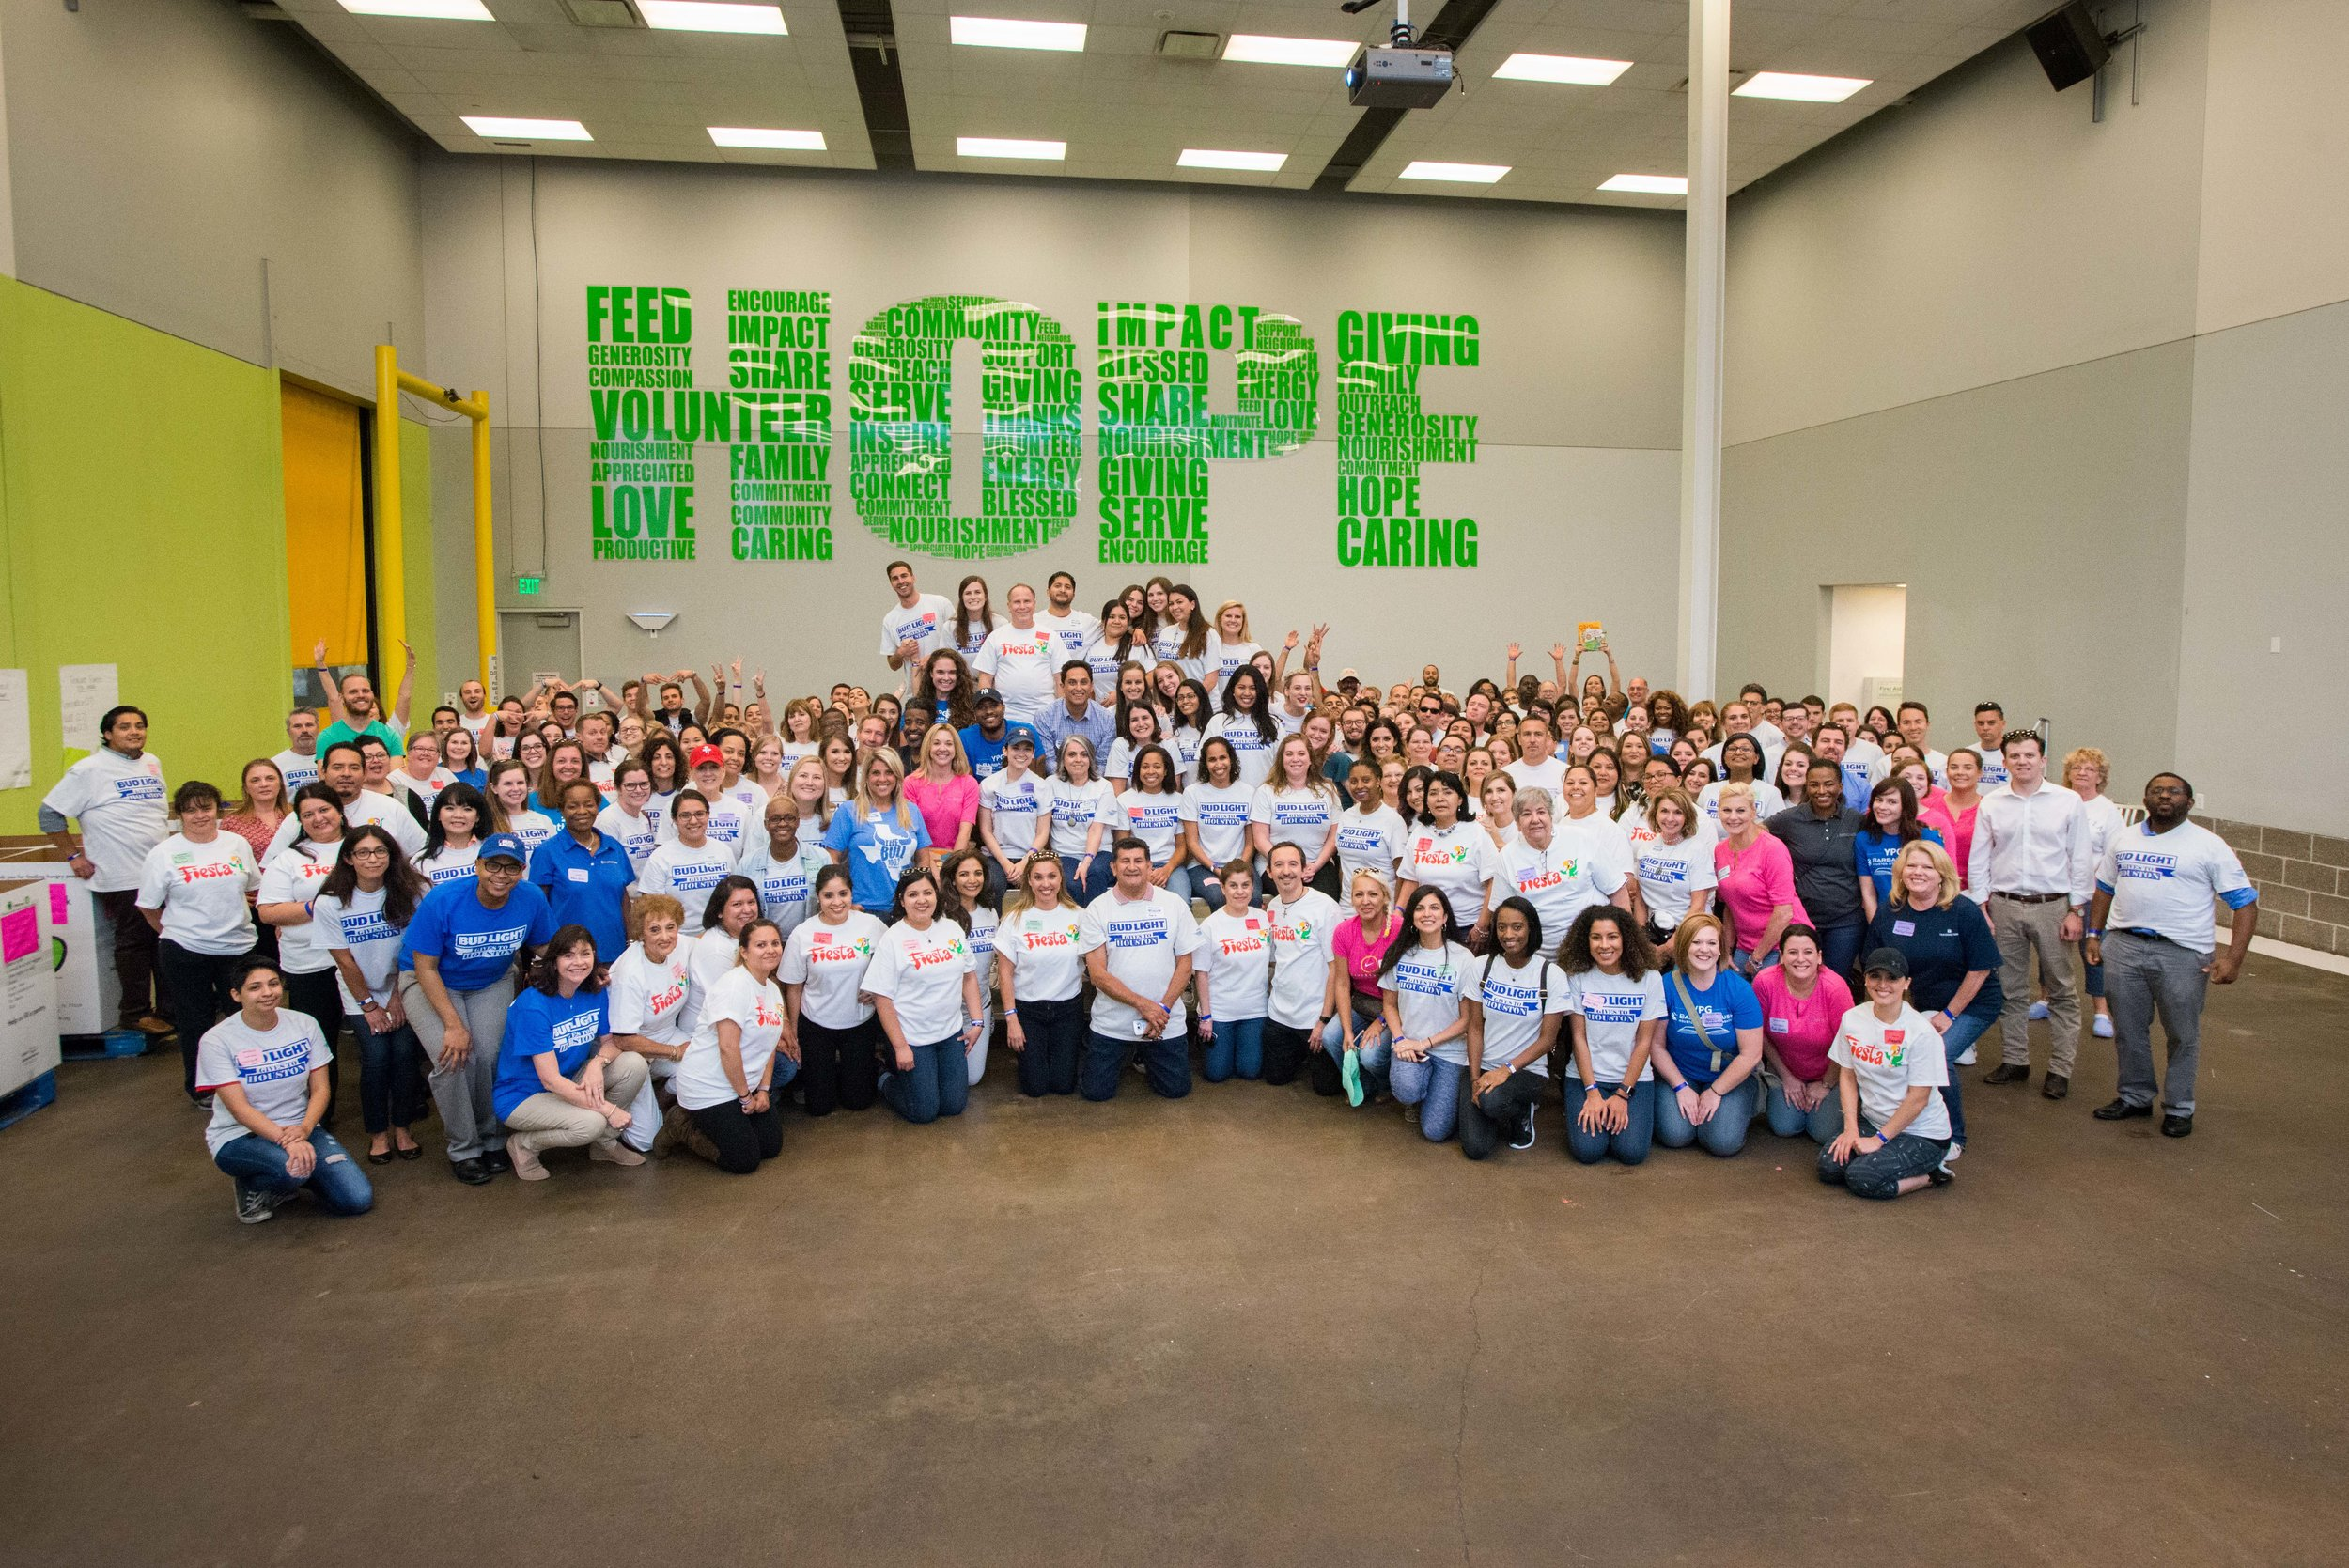 Volunteers gather for photo at the Bud Light Gives to Houston event.